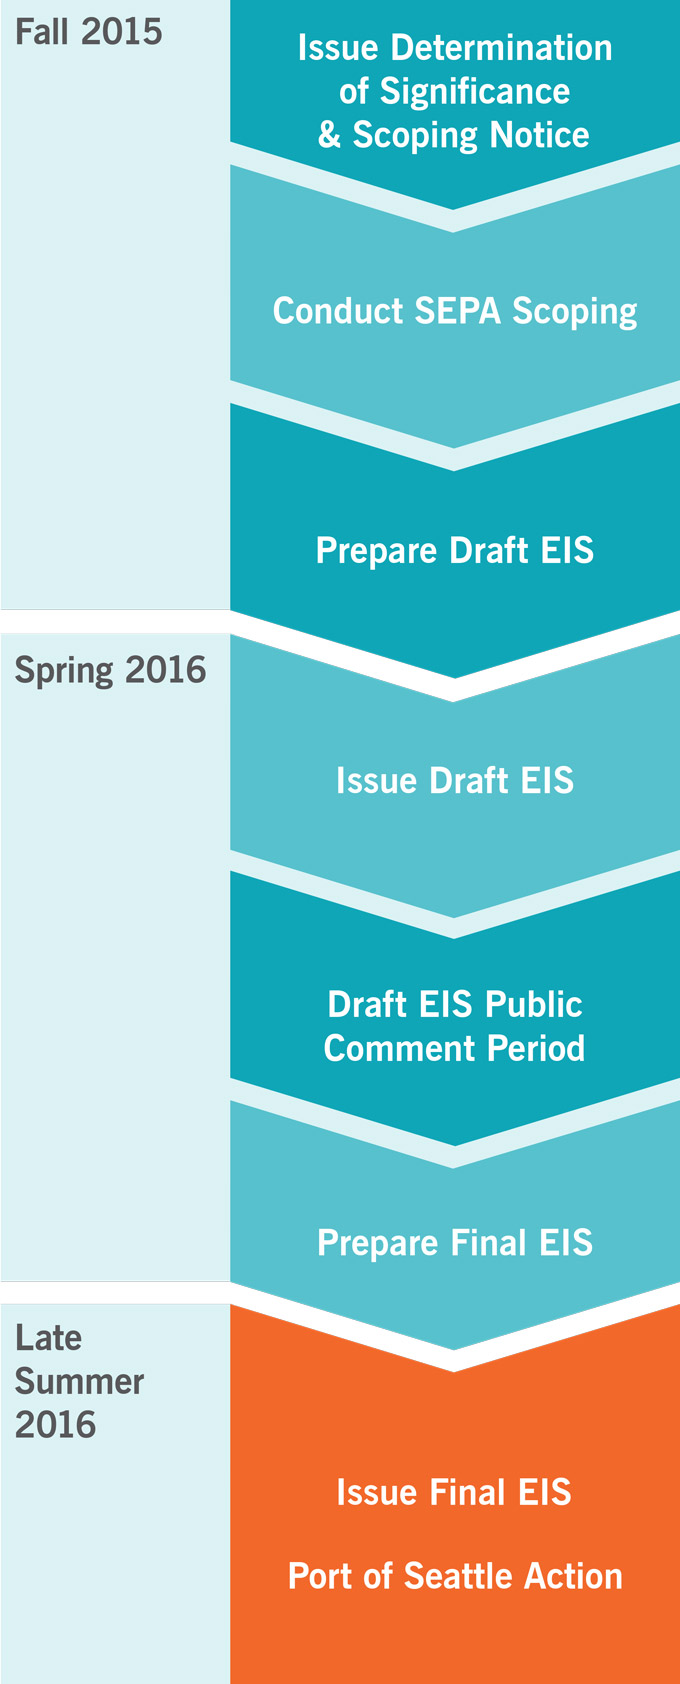 A process timeline showing Scoping occurred in fall 2015, the Draft EIS was issued in spring 2016, and the Final EIS was issued in late summer 2016.